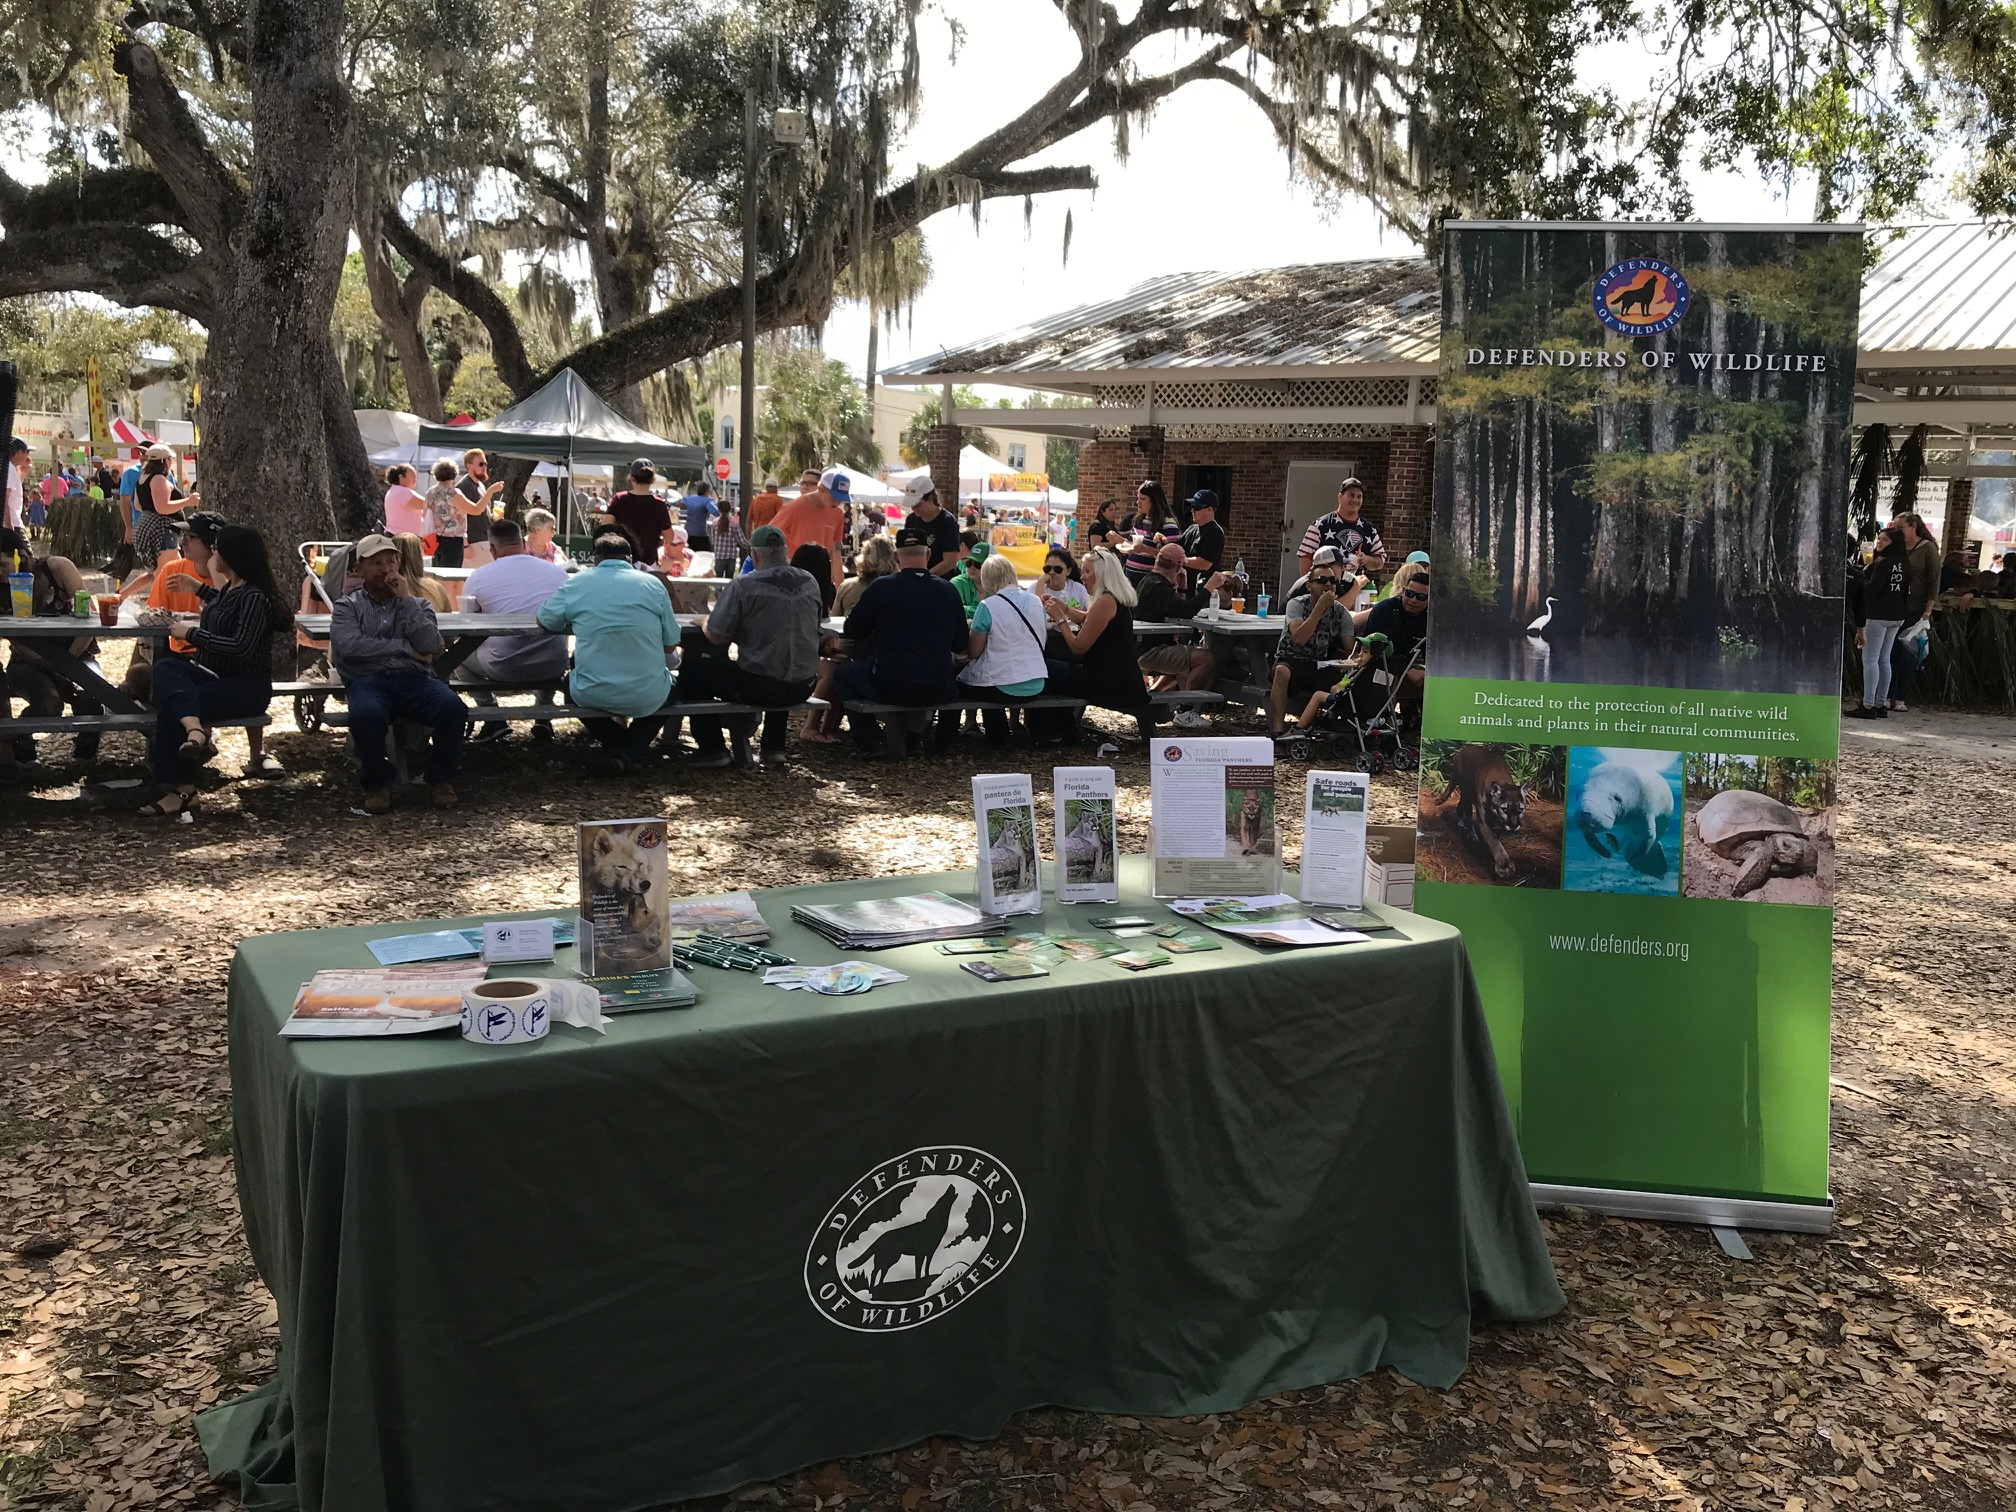 Tabling at the swamp cabbage festival in LaBelle, FL